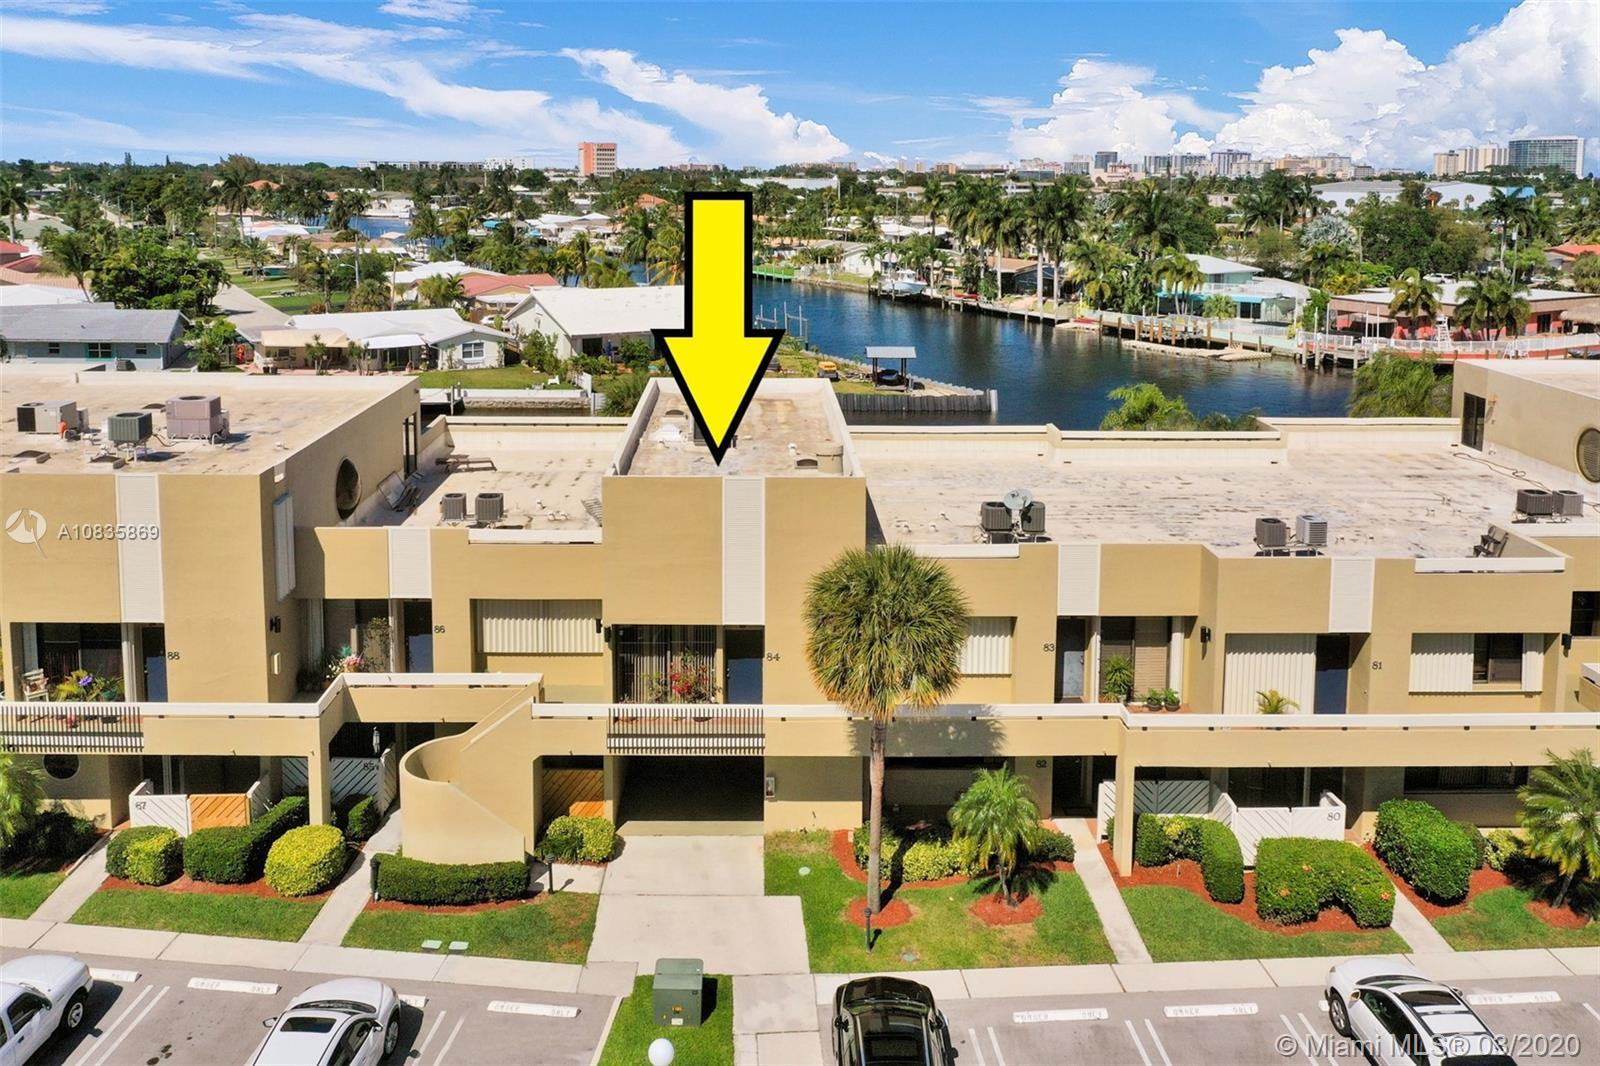 WOW! RARE OPPORTUNITY! BEST BUY ON THIS WATERFRONT TOWNHOME IN GATED PRIVATE NOBEL POINT WITH PRIVAT